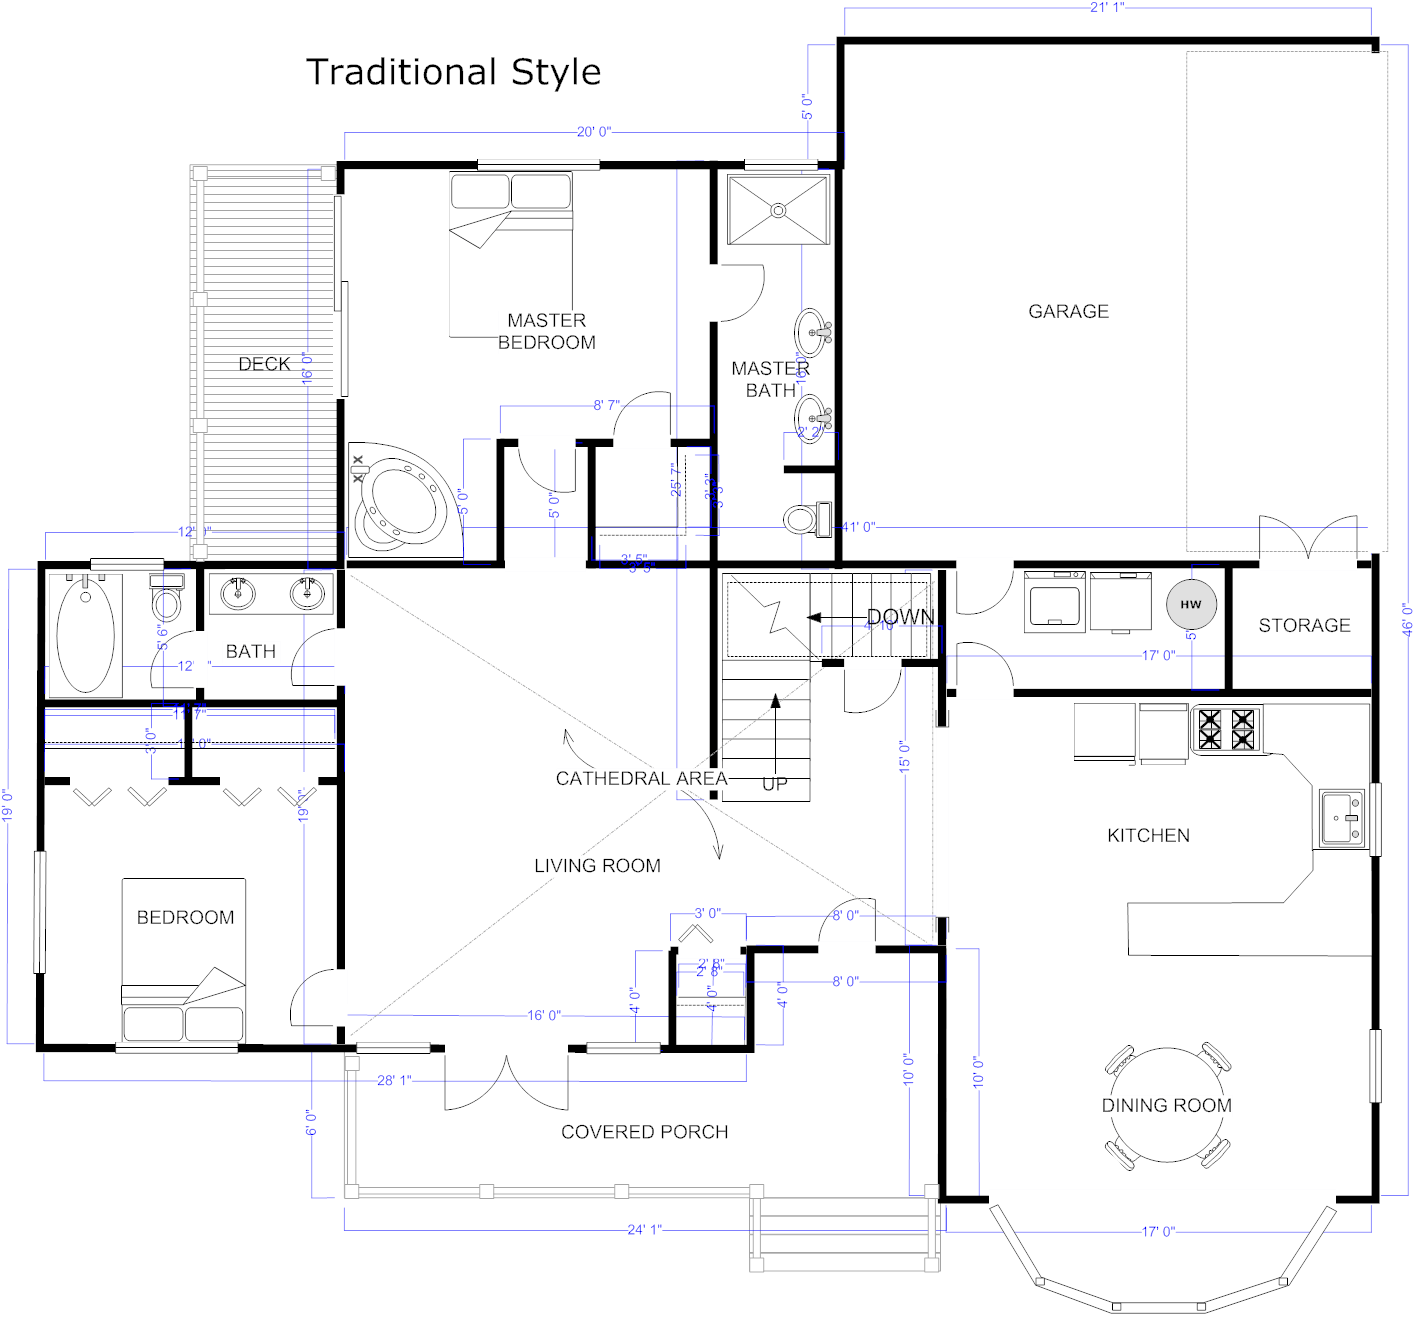 House design software download free - Home Design Templates